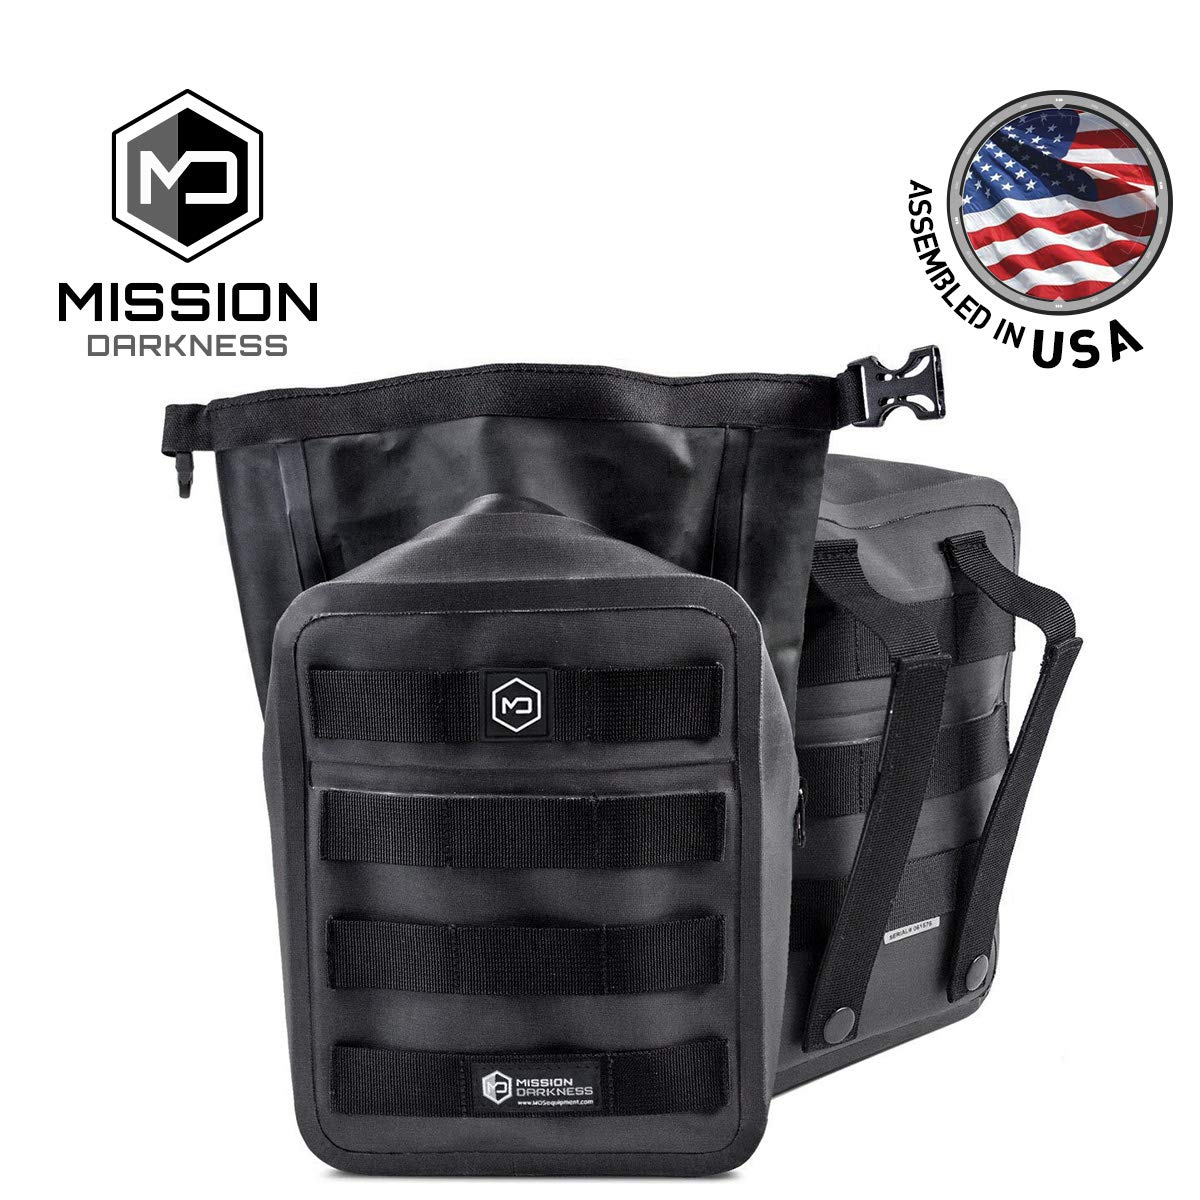 Mission Darkness Dry Shield MOLLE Faraday Pouch - Waterproof Dry Bag for Electronic Device Security & Transport/Signal Blocking/Anti-Tracking/EMP Shield/Data Privacy for Phones, Tablets, Etc. by Mission Darkness